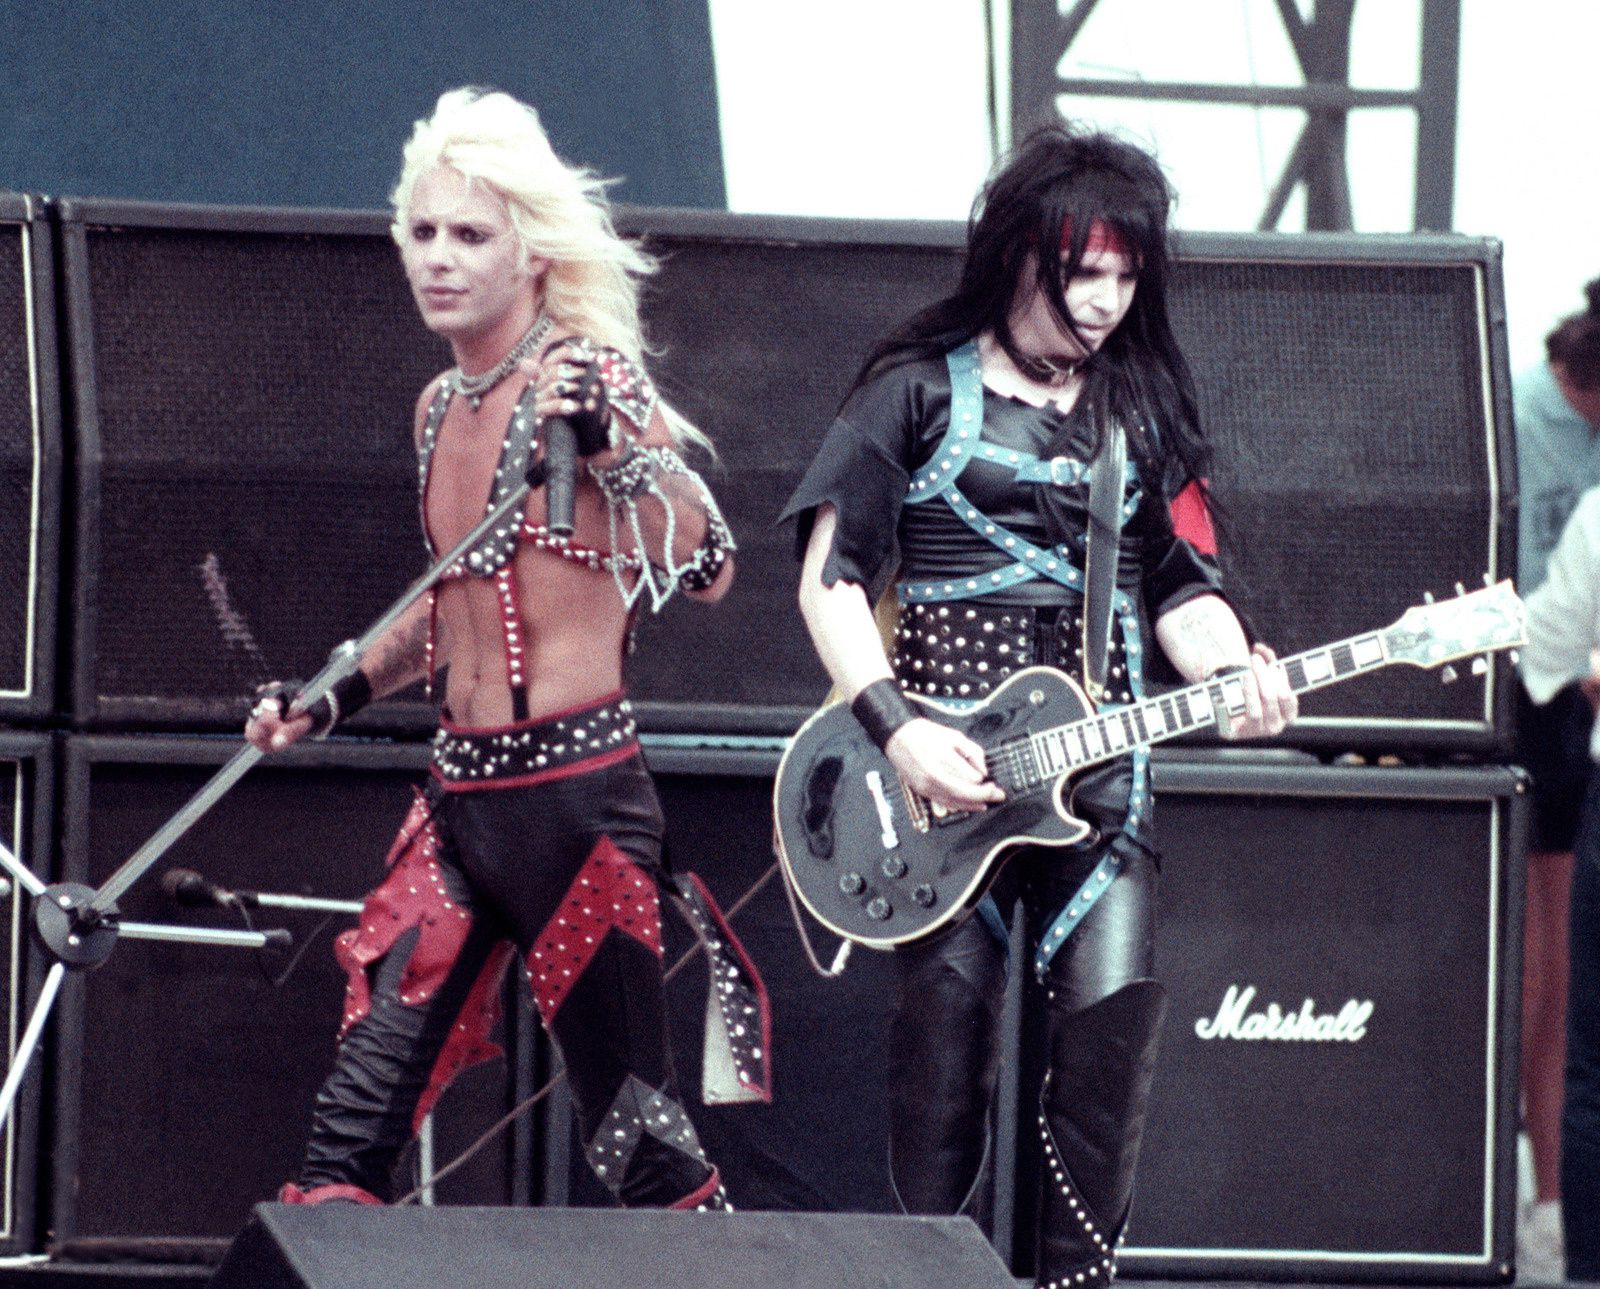 Mick Mars - 1984 - Mötley Crüe, Vince Neil - Monster of rock Castle Donington (England)